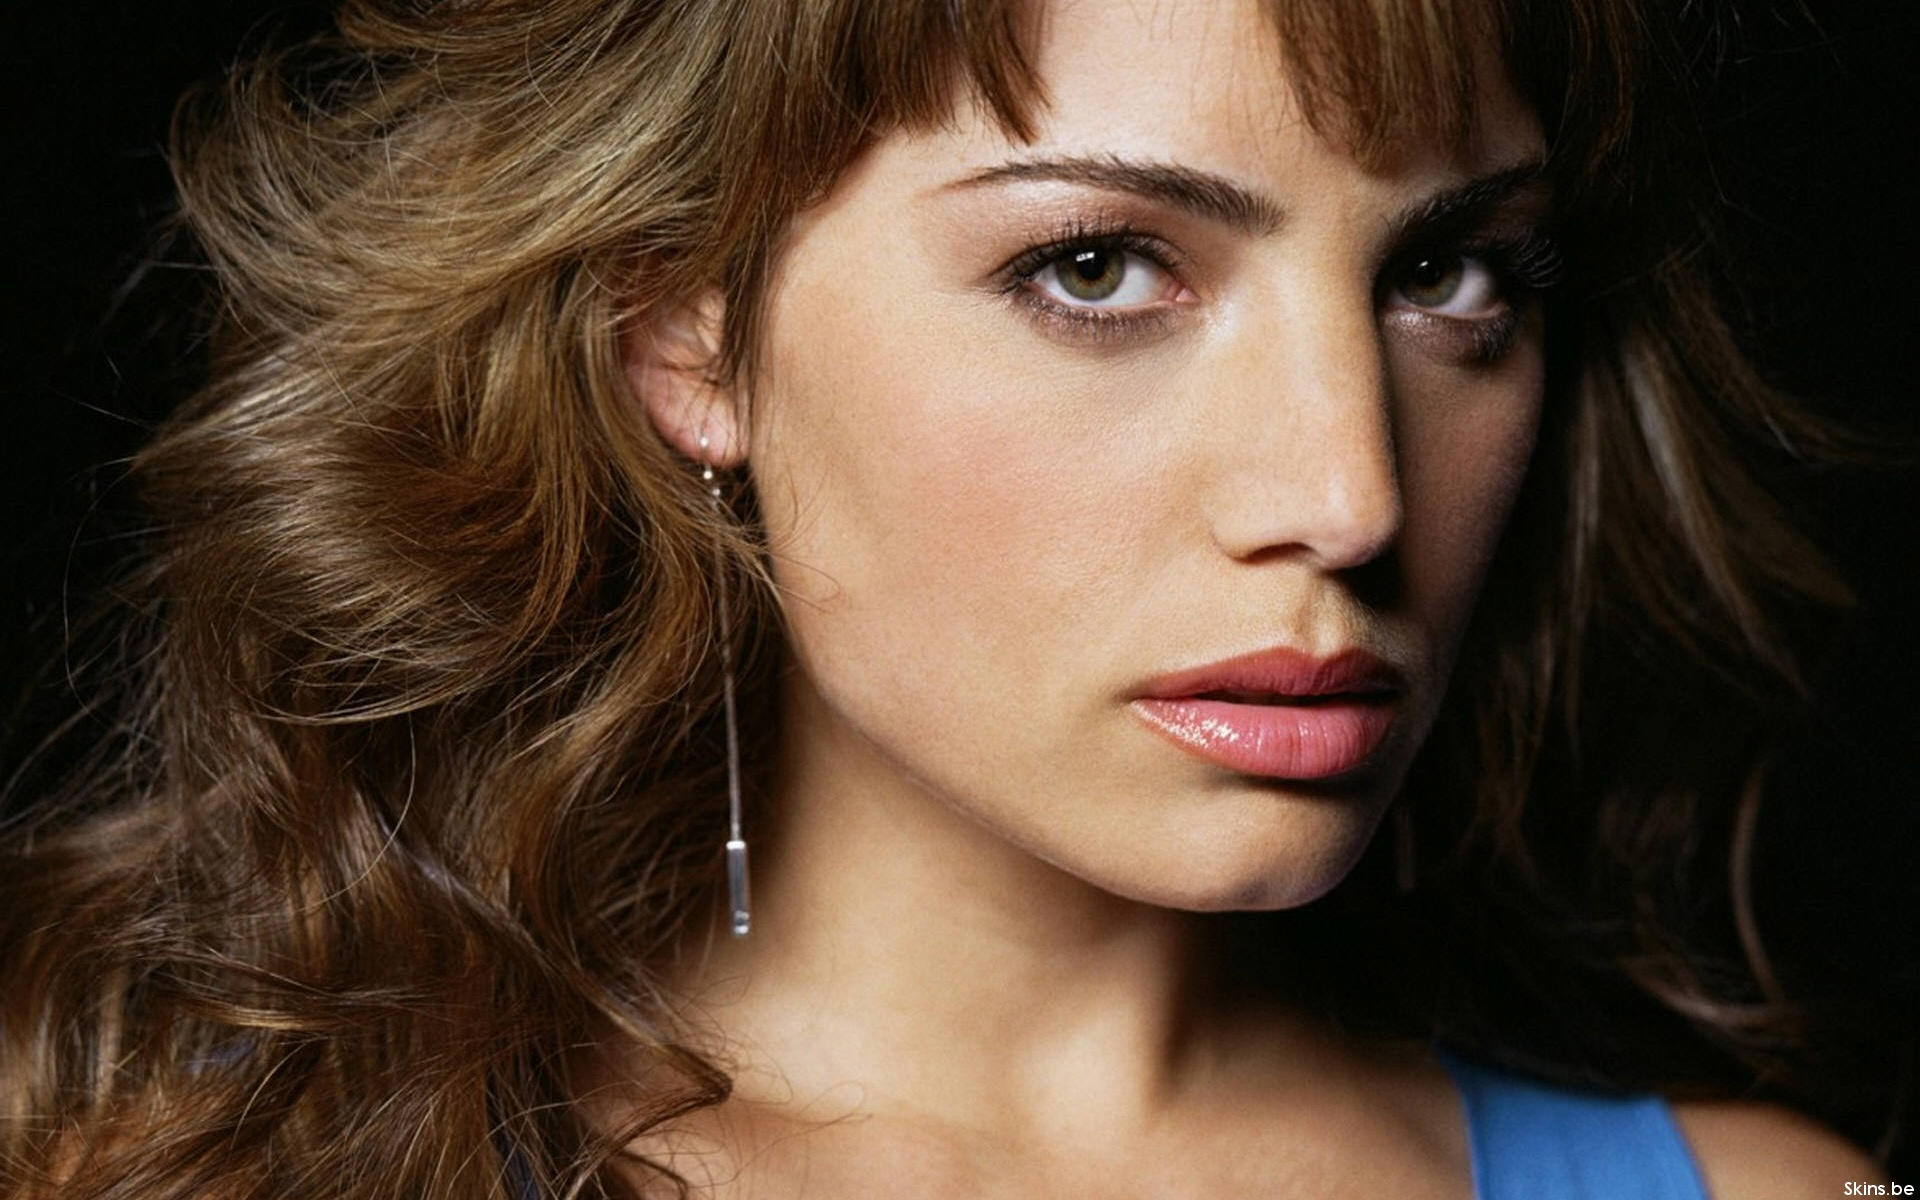 erica durance computer wallpaper - photo #17